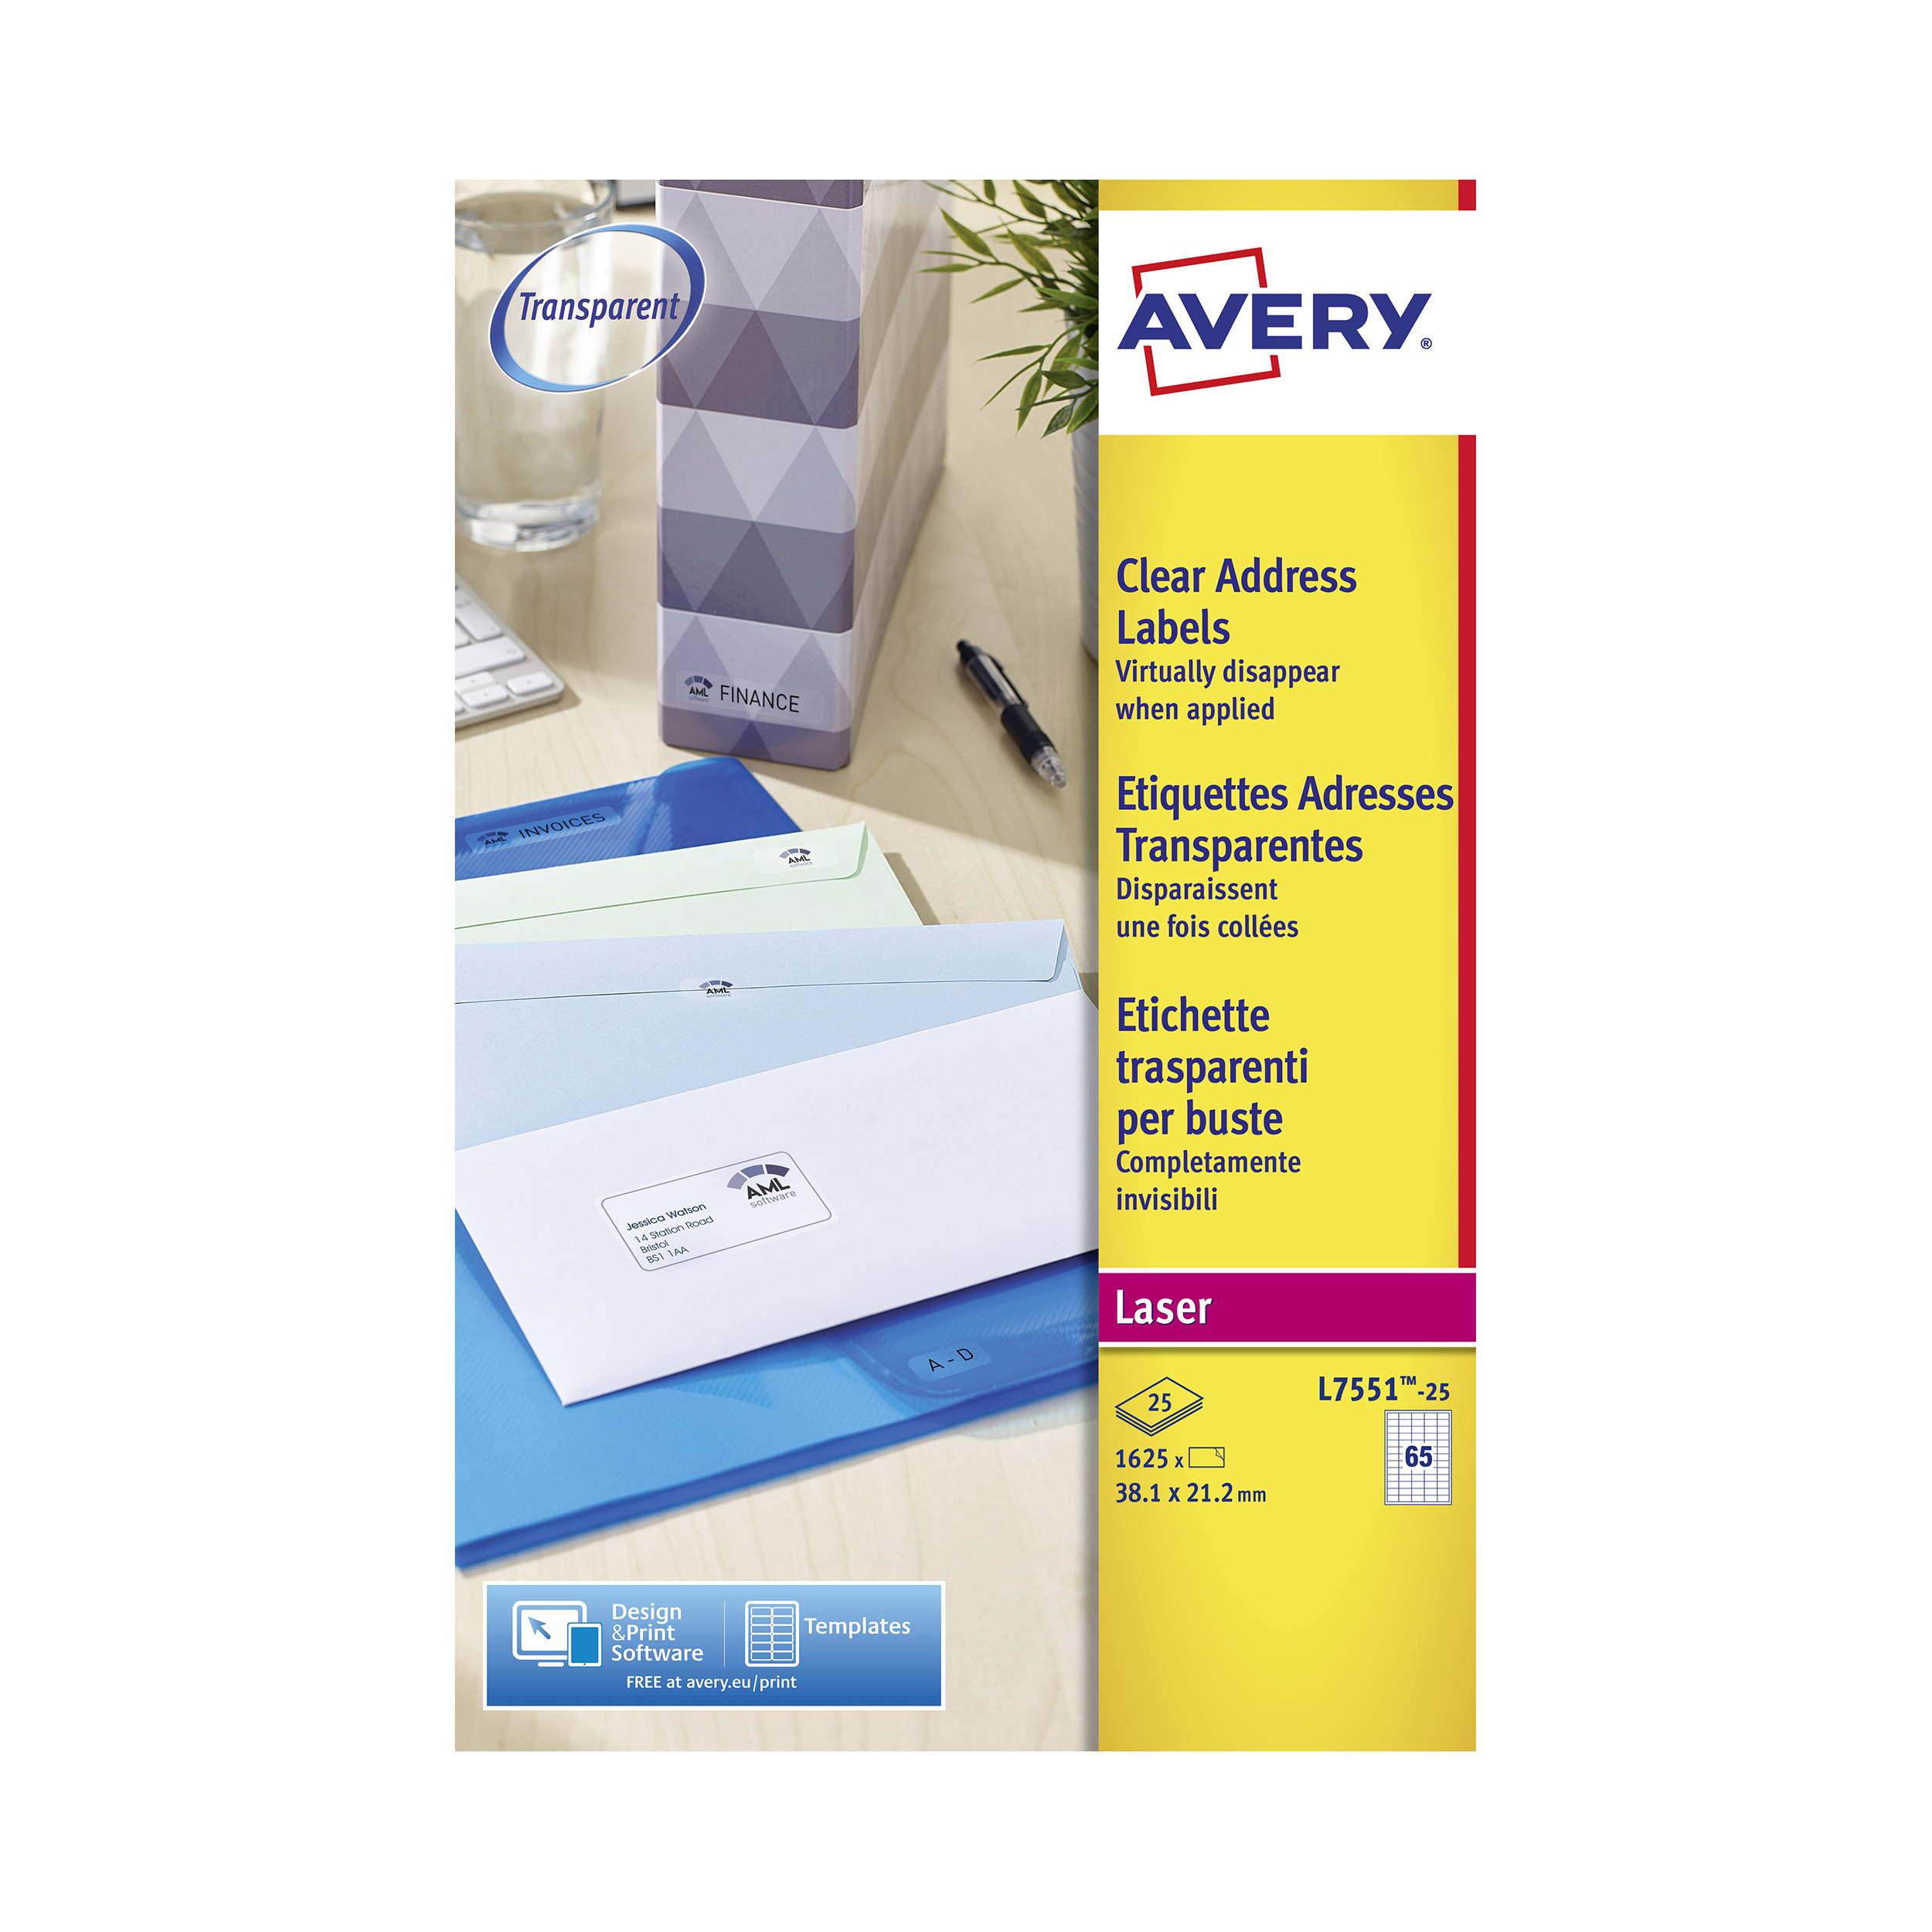 Address Avery Mini Address Labels Laser 65 per Sheet 38.1x21.2mm Clear Ref L7551-25 1625 Labels